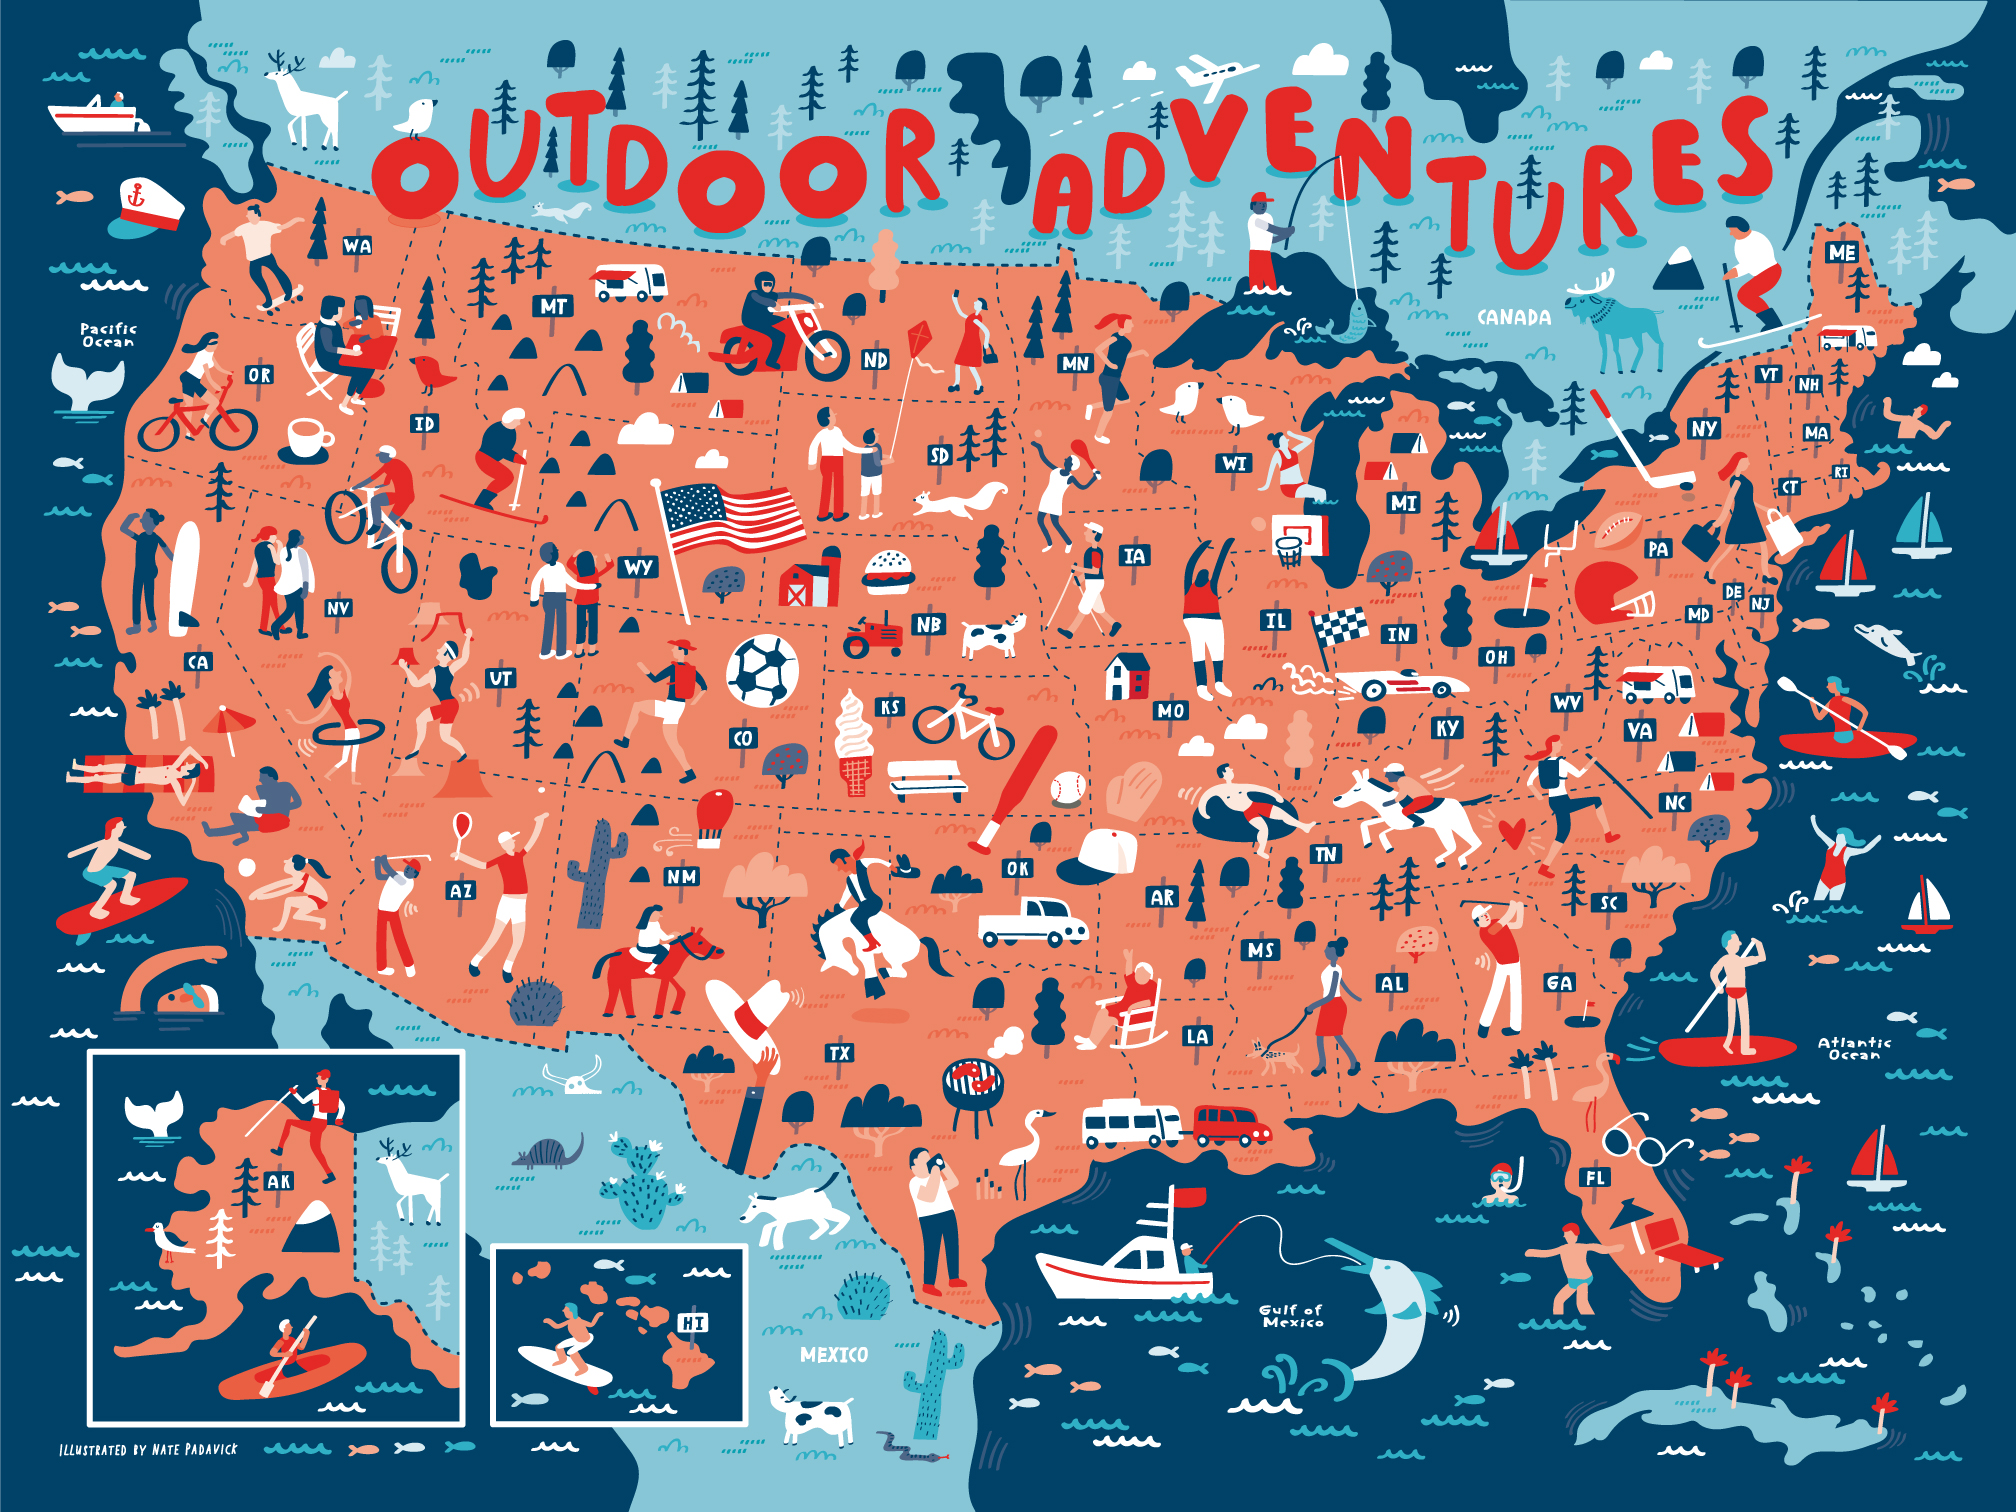 USA-Illustrated-Map-of-Sports-and-Outdoor-Adventures-by-Nate-Padavick-promo.jpg